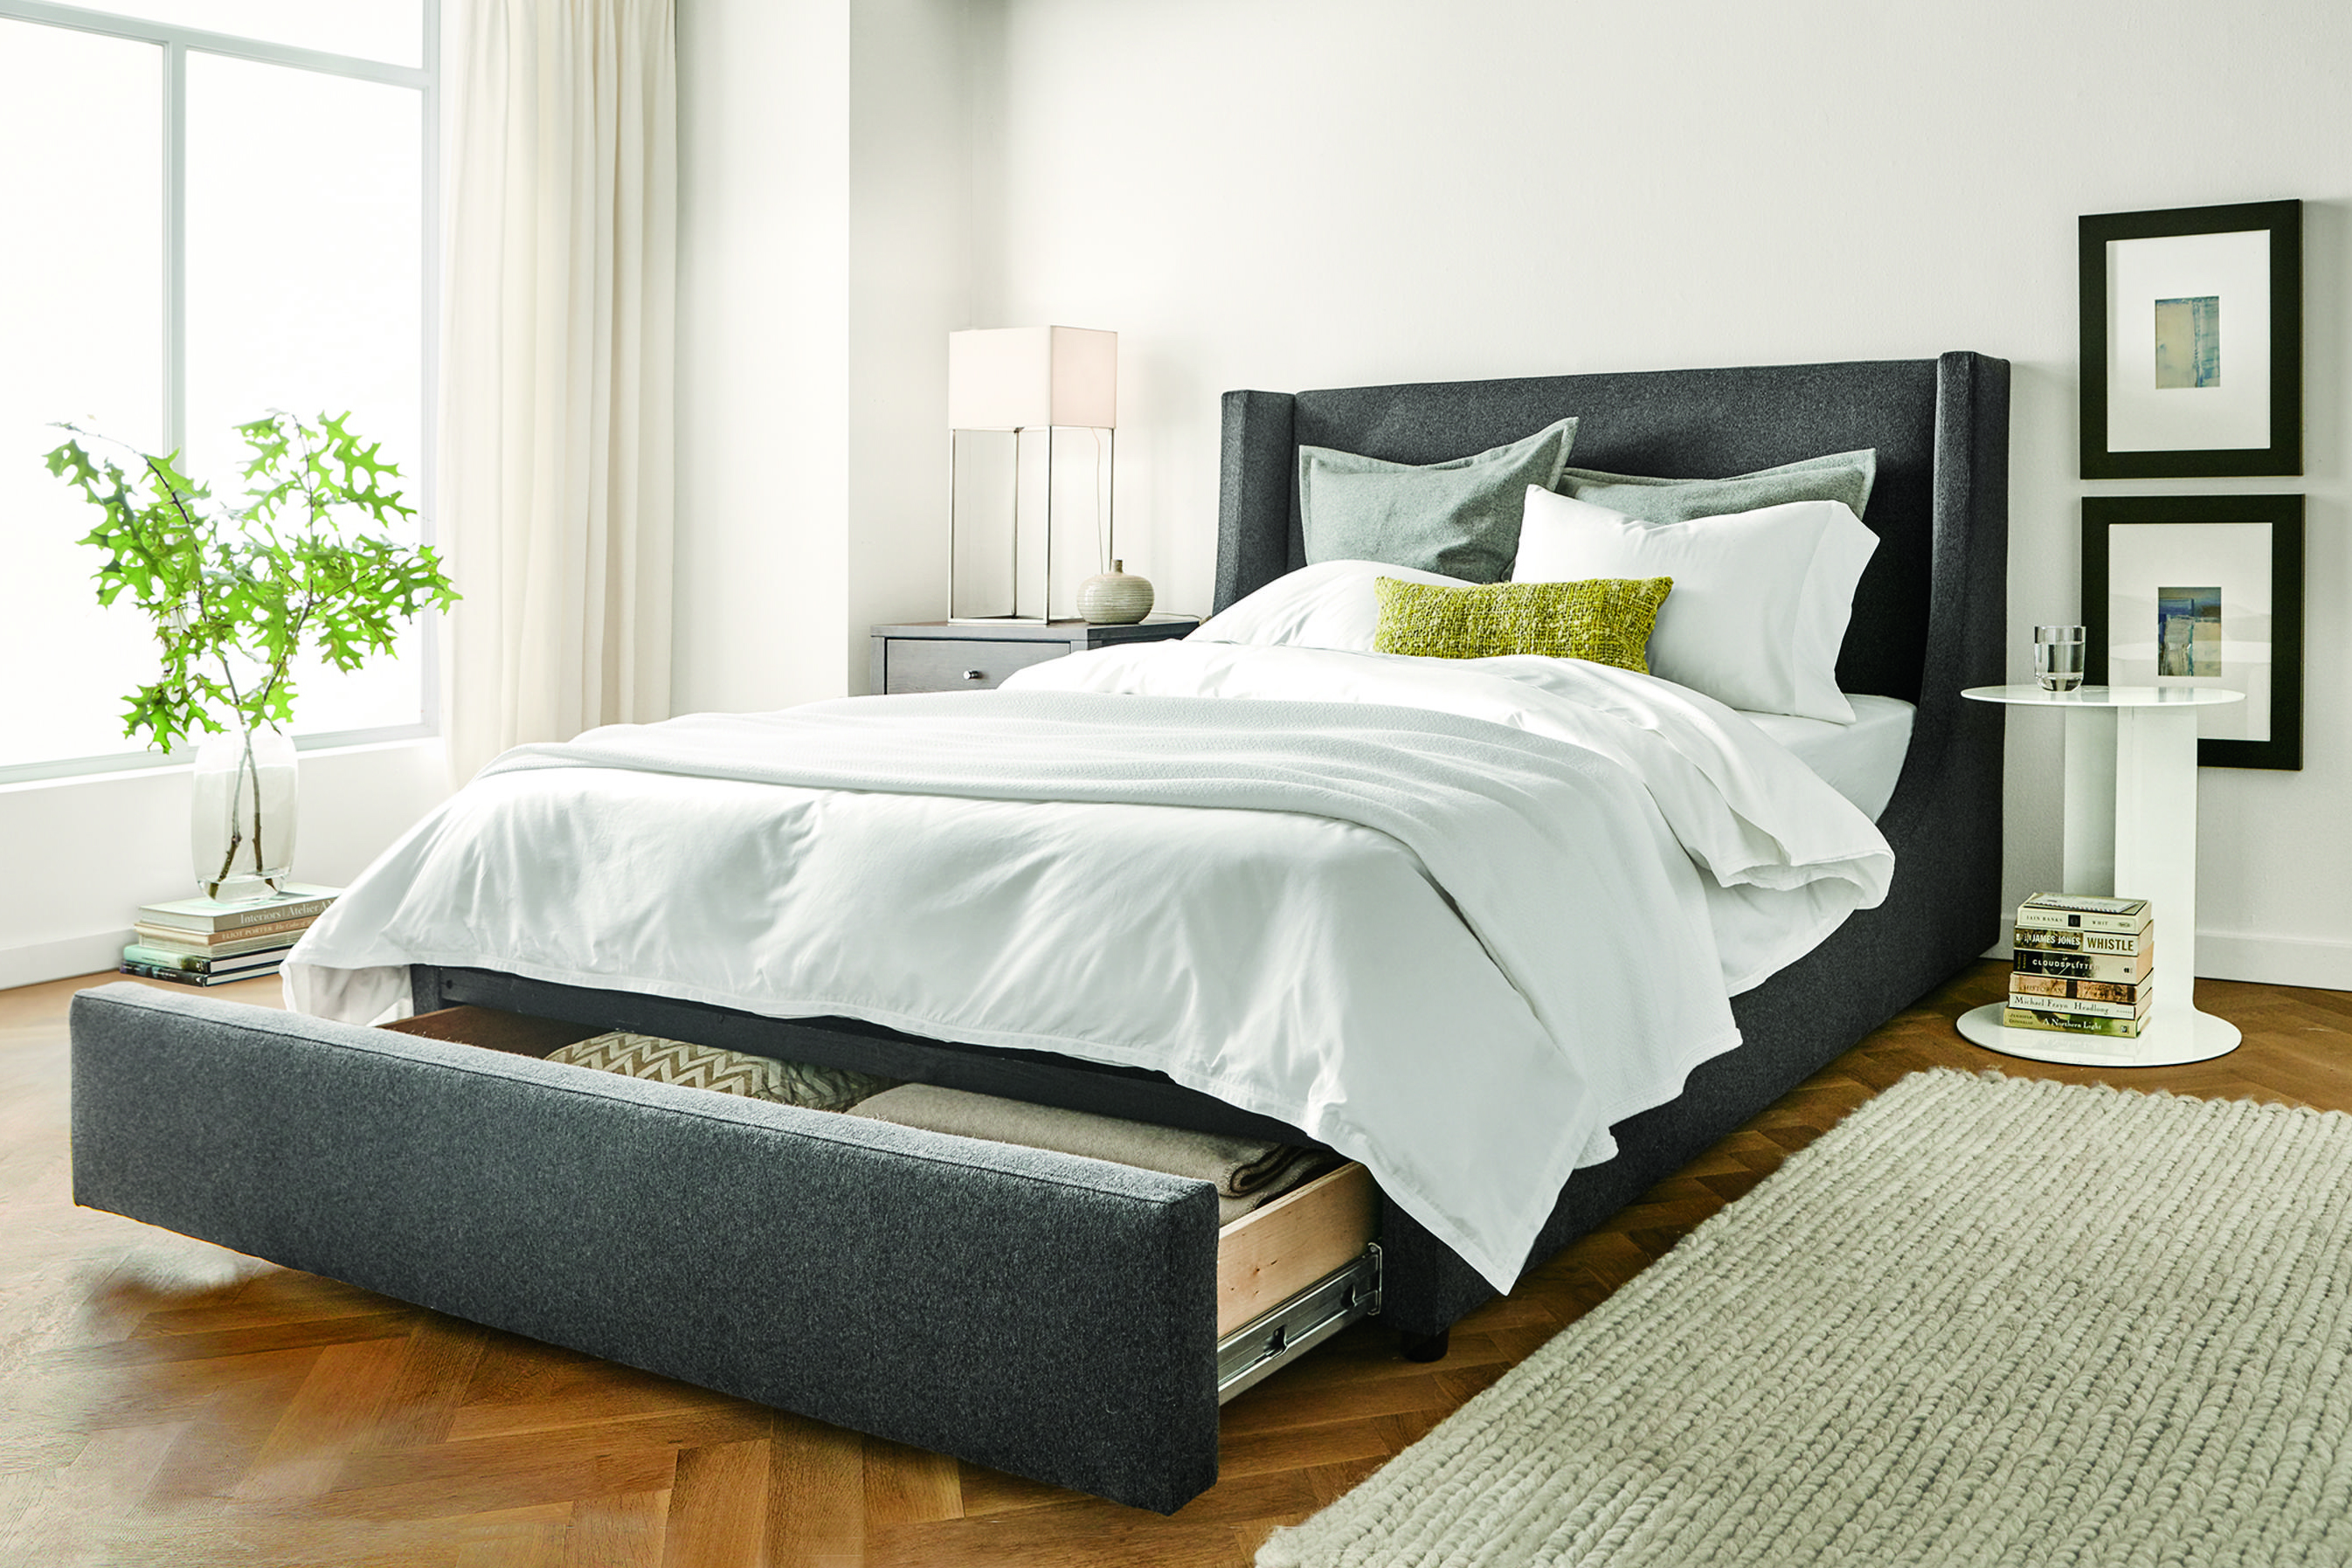 Bed with Storage (Photo Credit: Courtesy of Room & Board) ONDHUJB